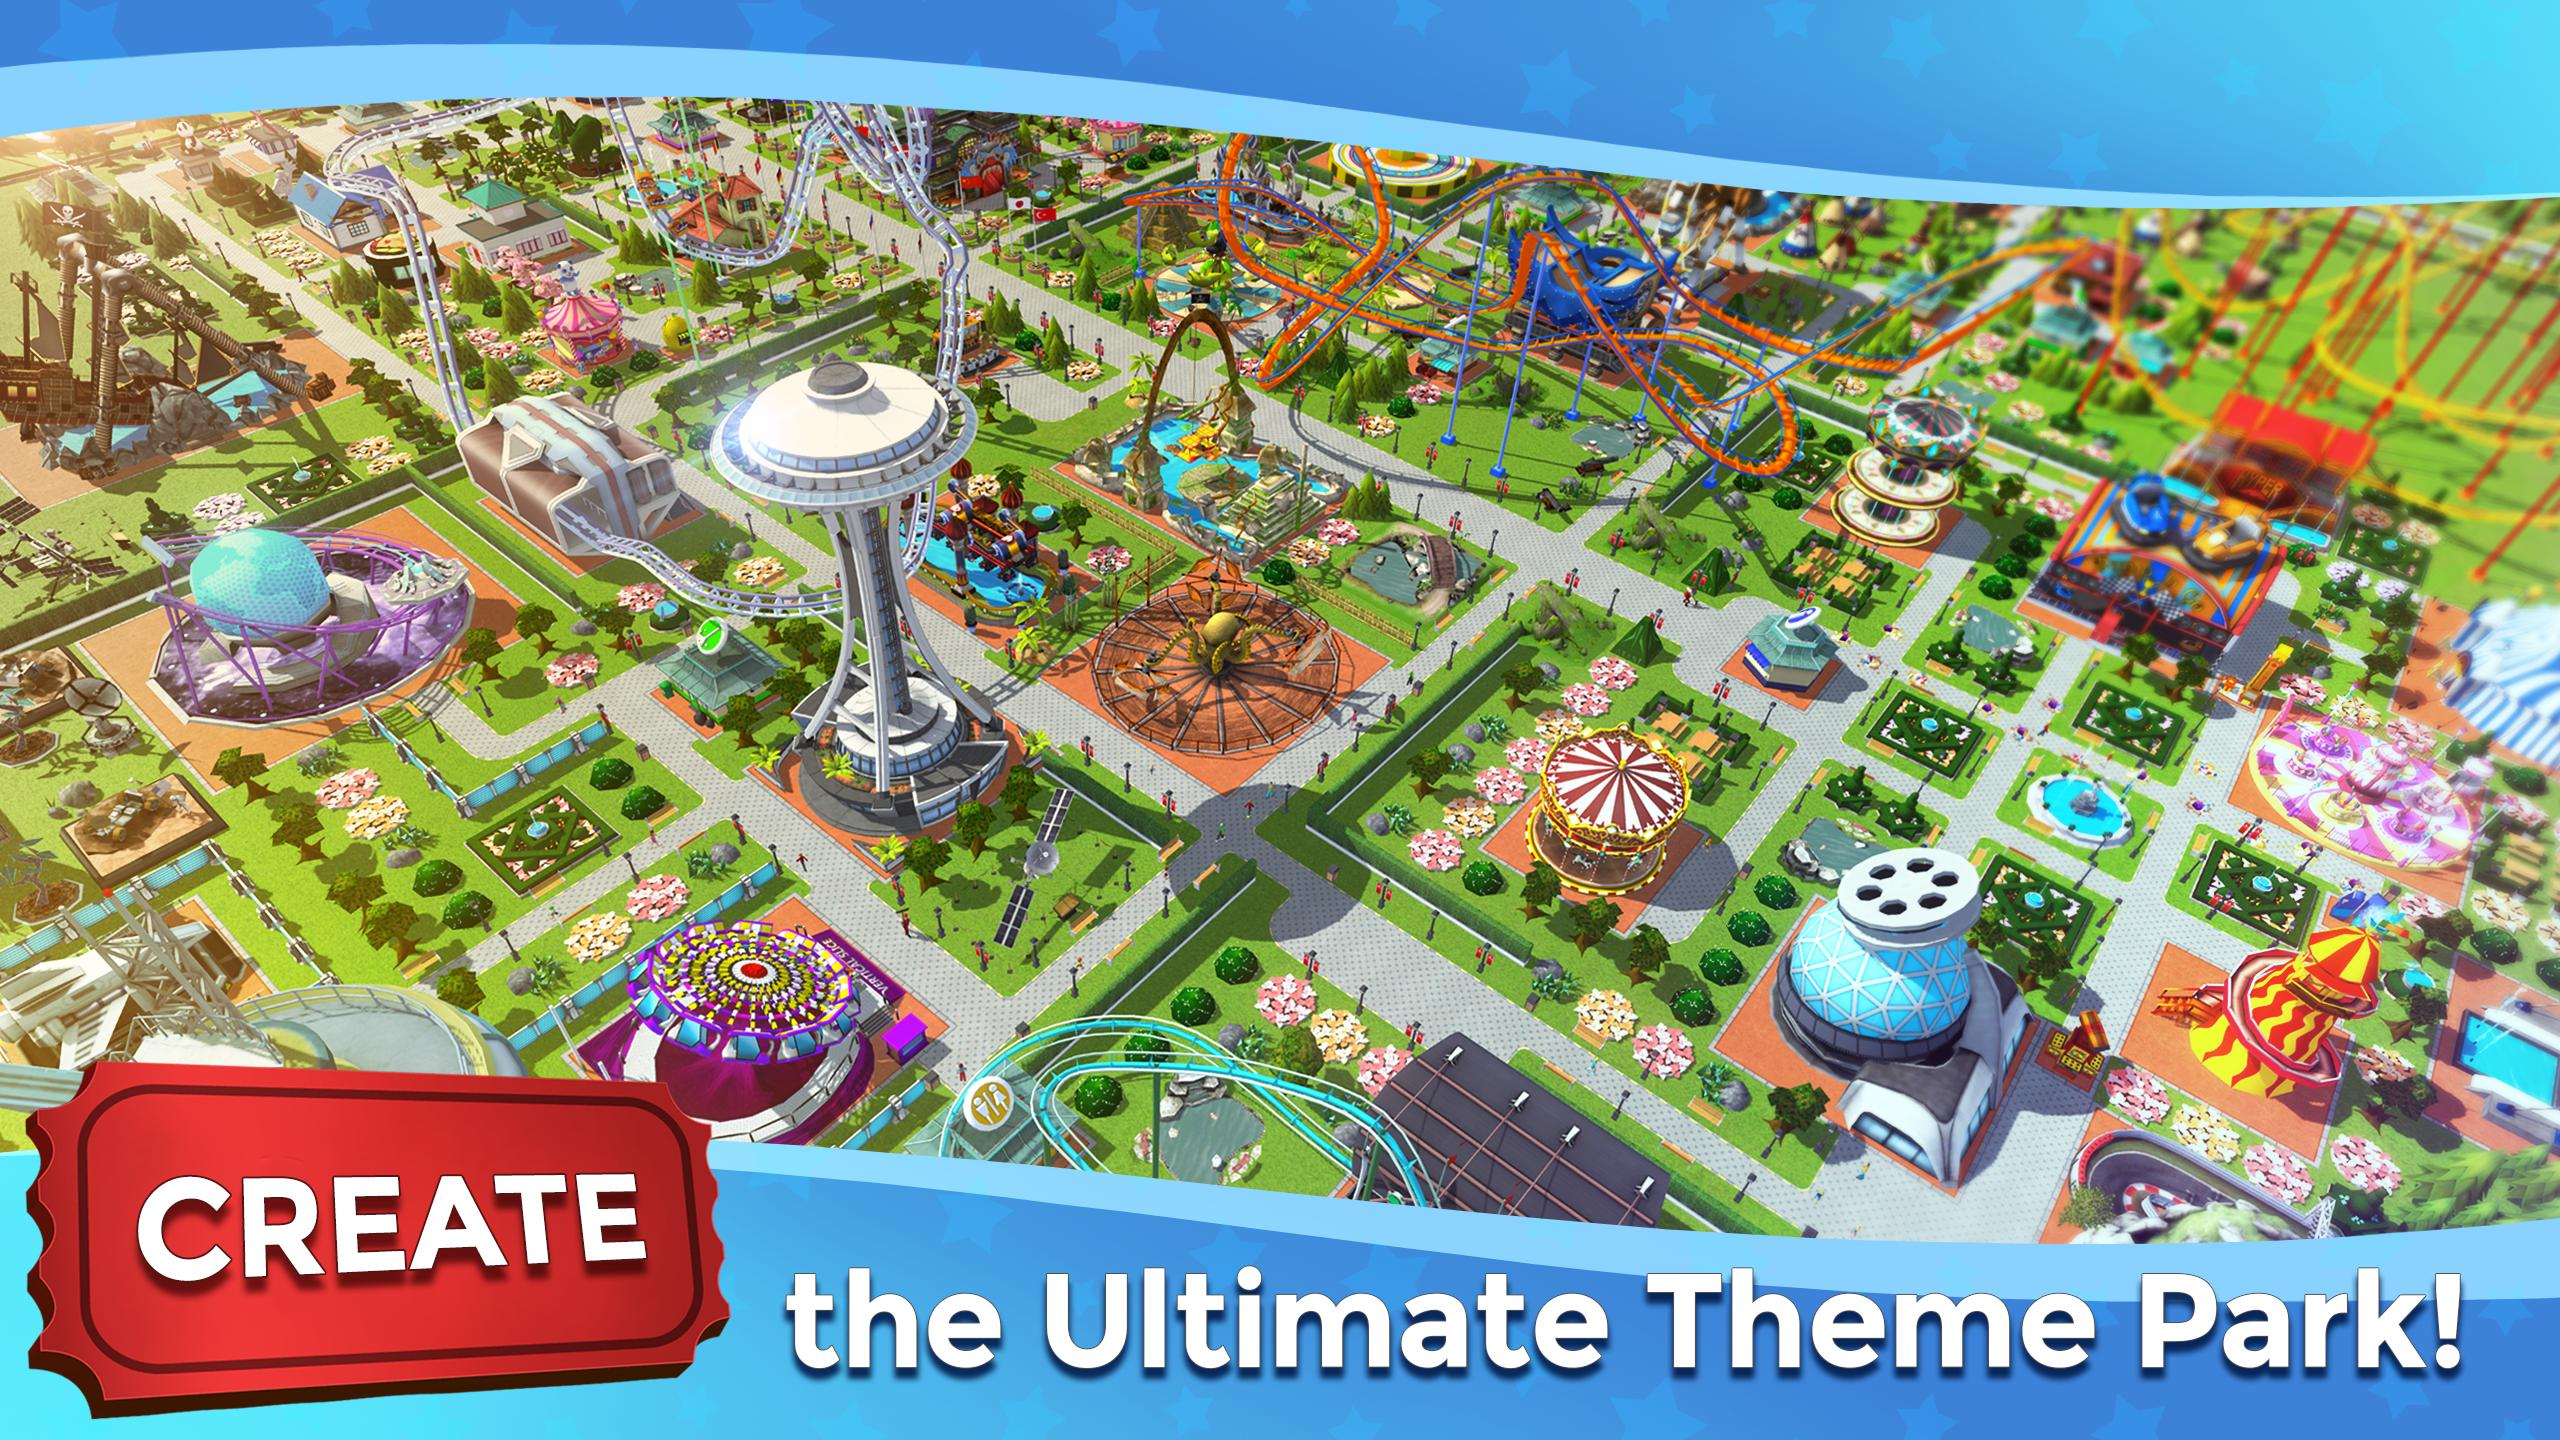 RollerCoaster Tycoon Touch - Build your Theme Park 3.5.0 Screenshot 17